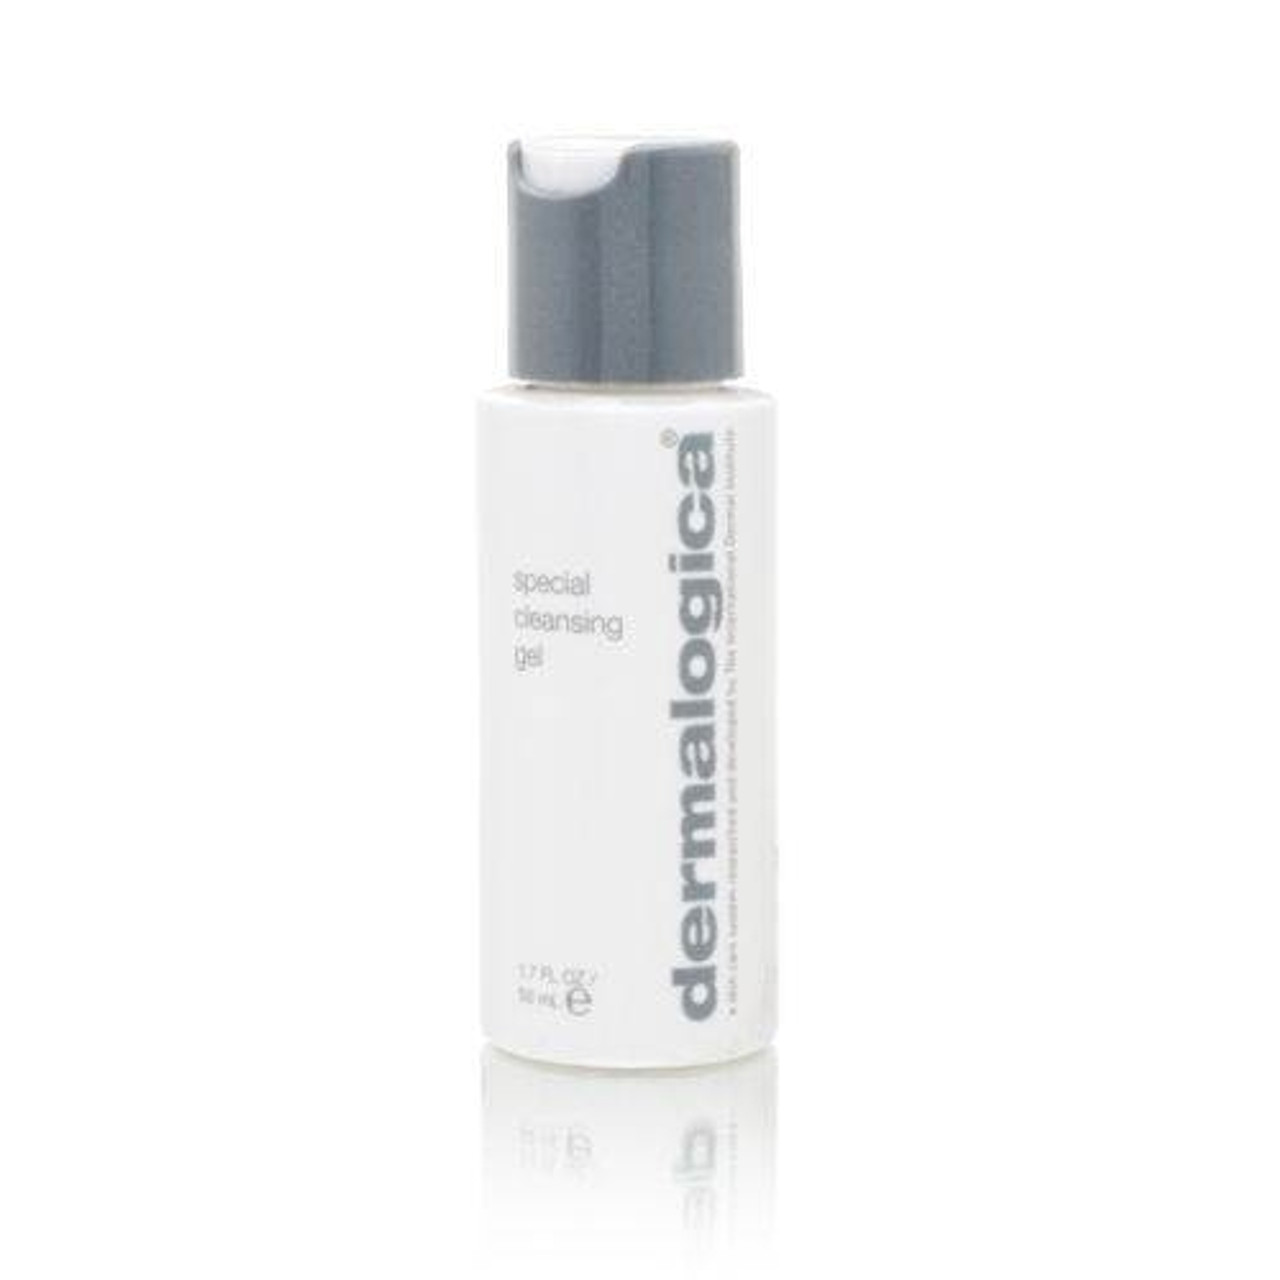 Dermalogica Special Cleansing Gel 1.7oz